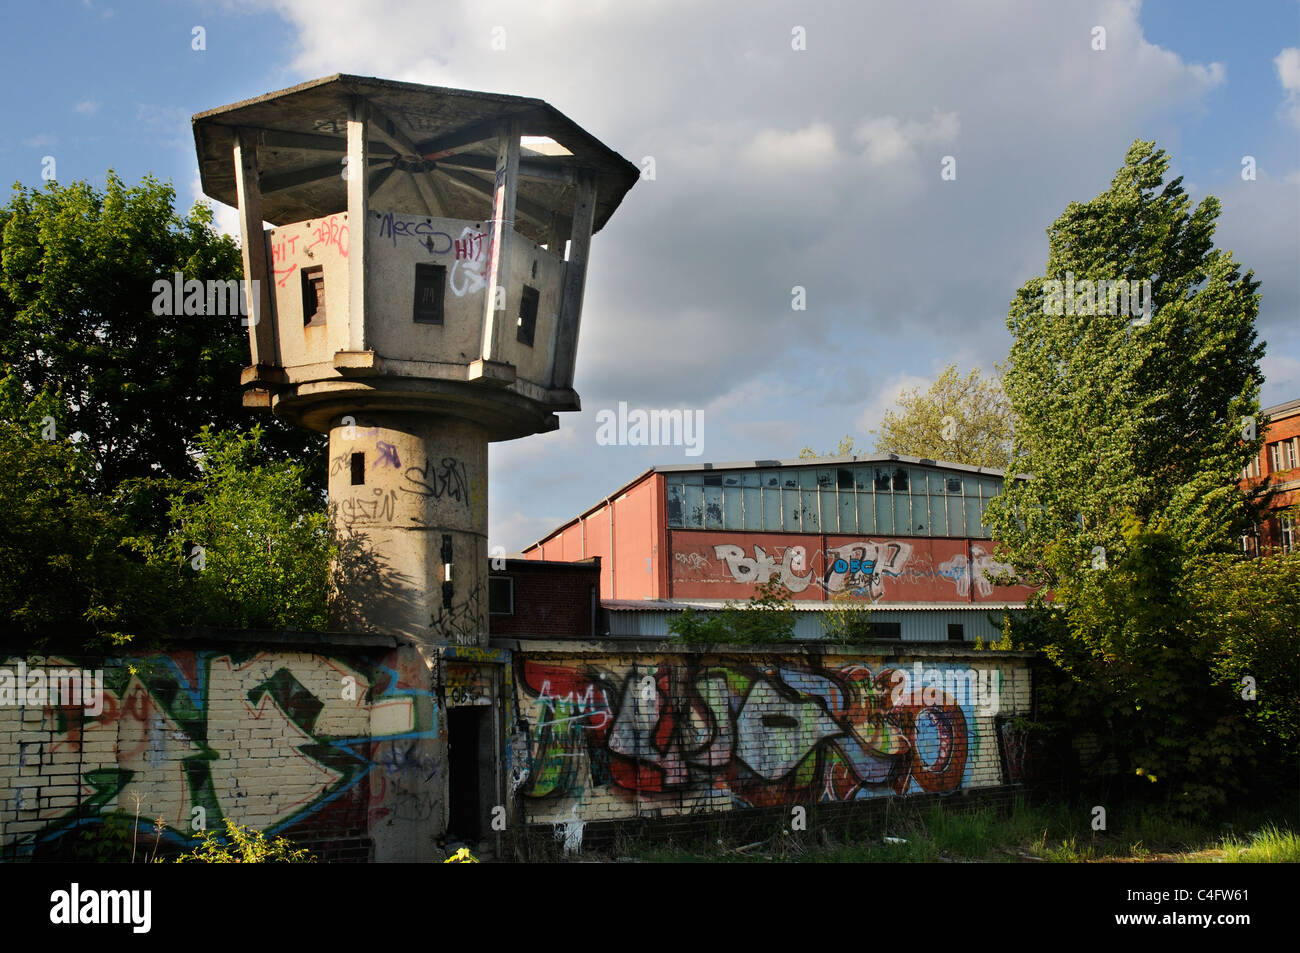 An abandoned watchtower in ex East Berlin - Stock Image